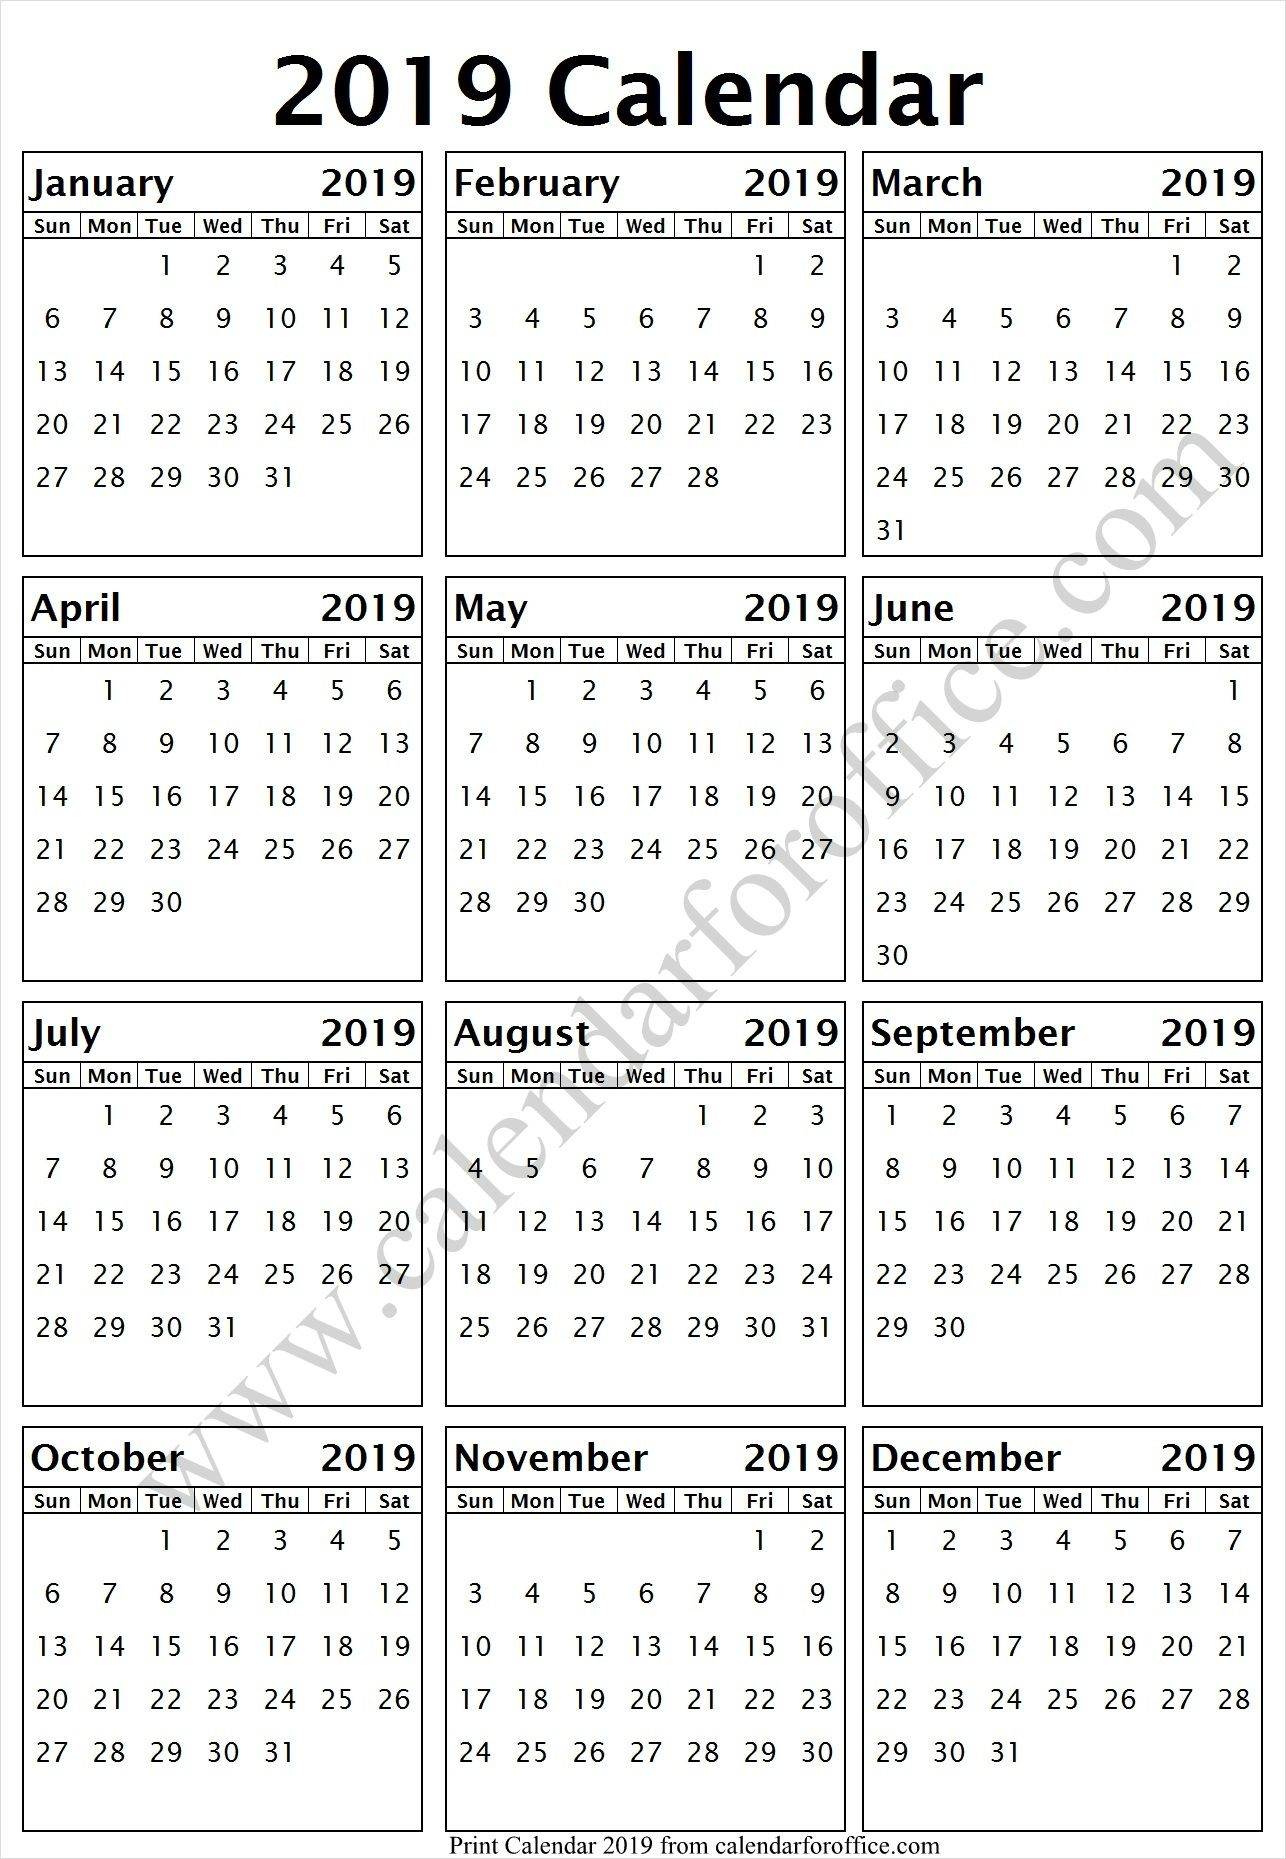 Day Of Year Calendar 2019 Day Calendar 2019 Sri Lanka | 2019 Yearly Calendar | Yearly